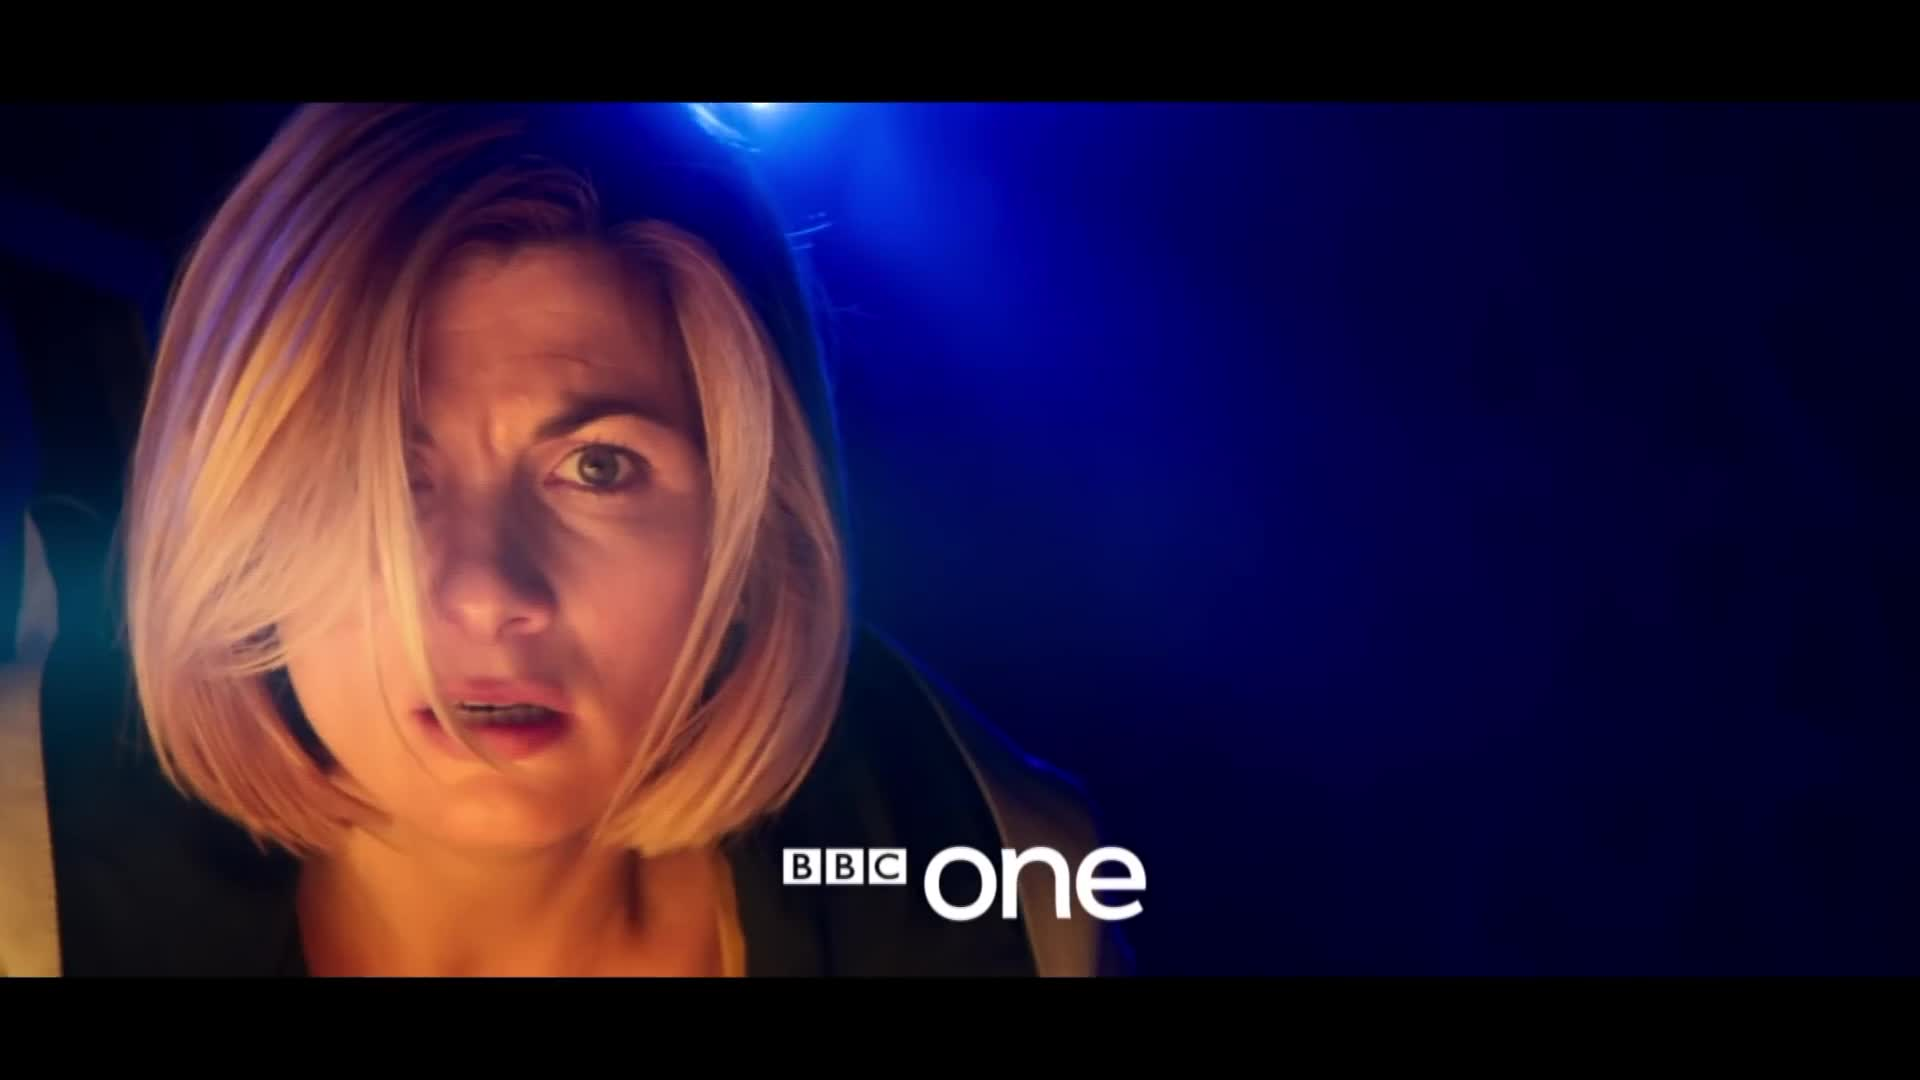 Trailer, Serie, Bbc, Doctor Who, BBc One